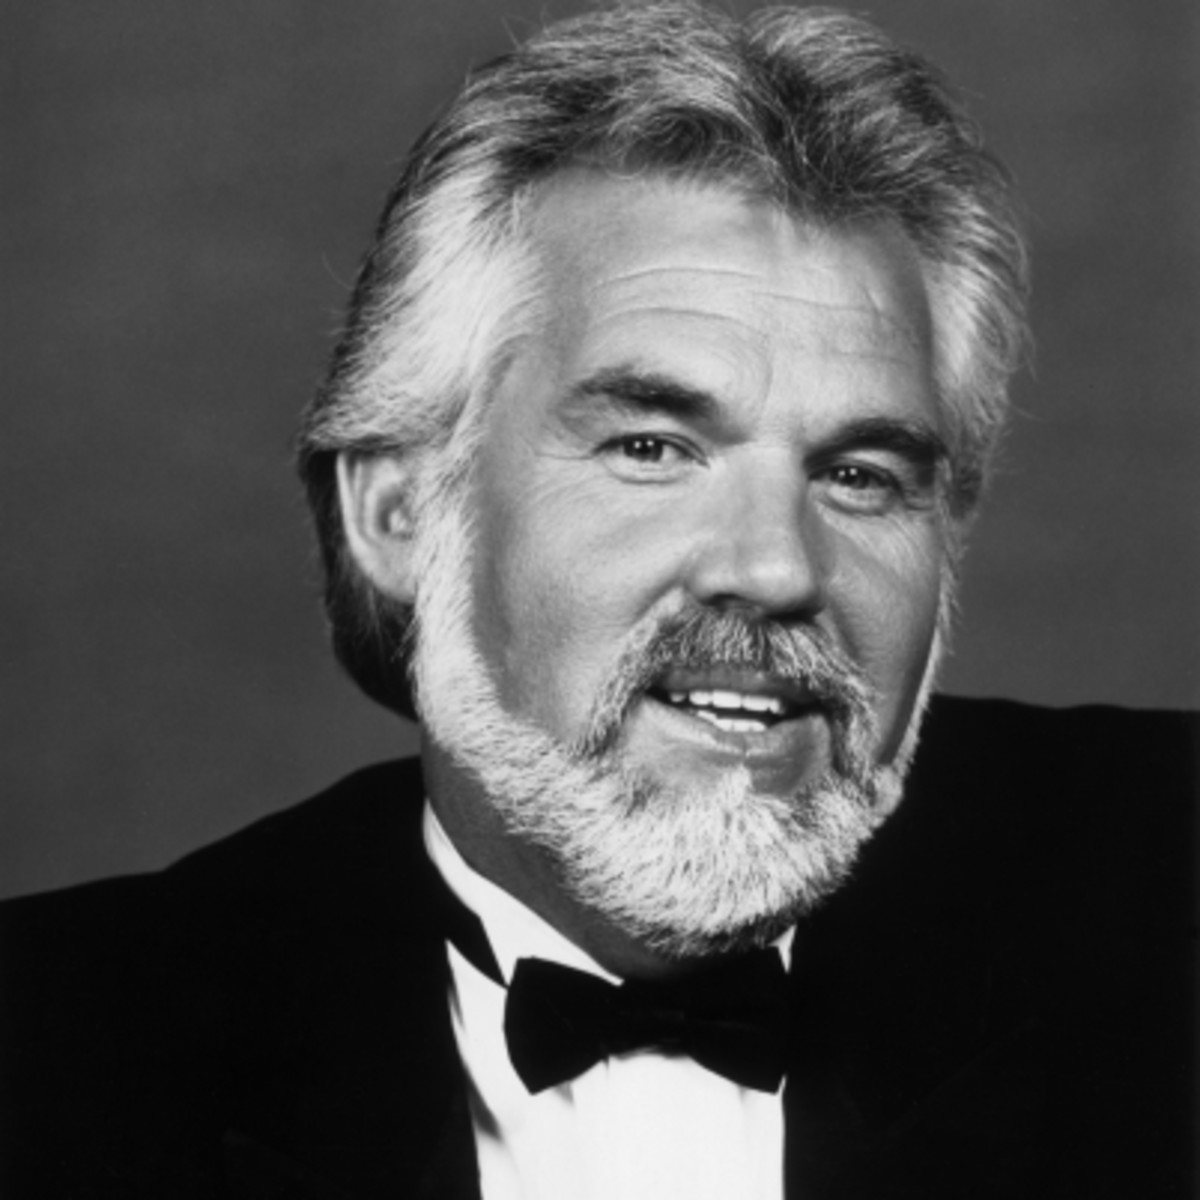 American Country Music Star Kenny Rogers dies aged 81 - Brand Spur